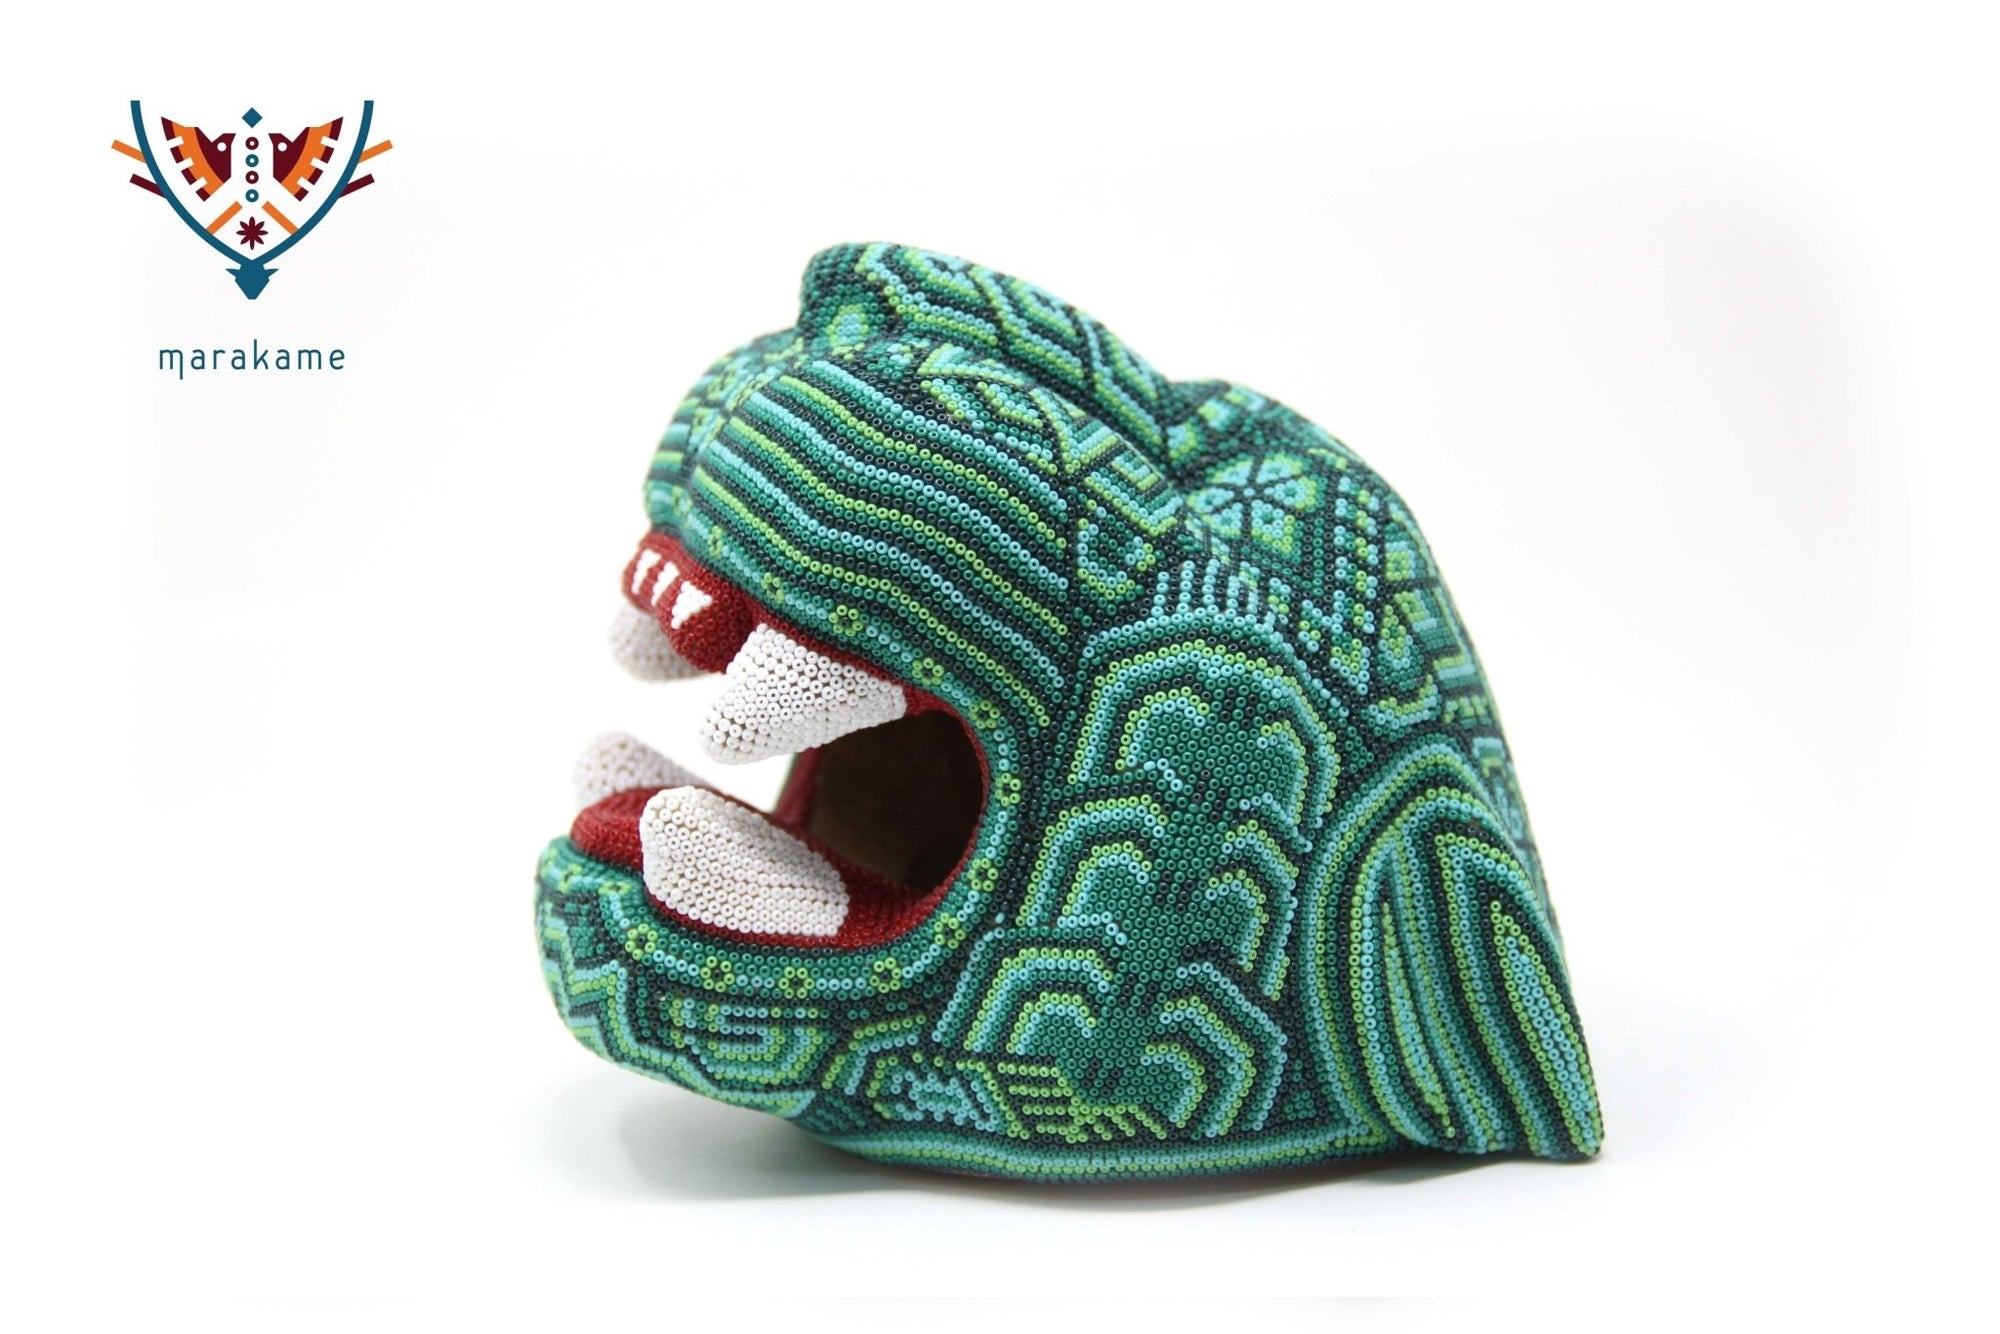 Copal sculpture - Medium Jaguar Head IV - Huichol Art - Marakame